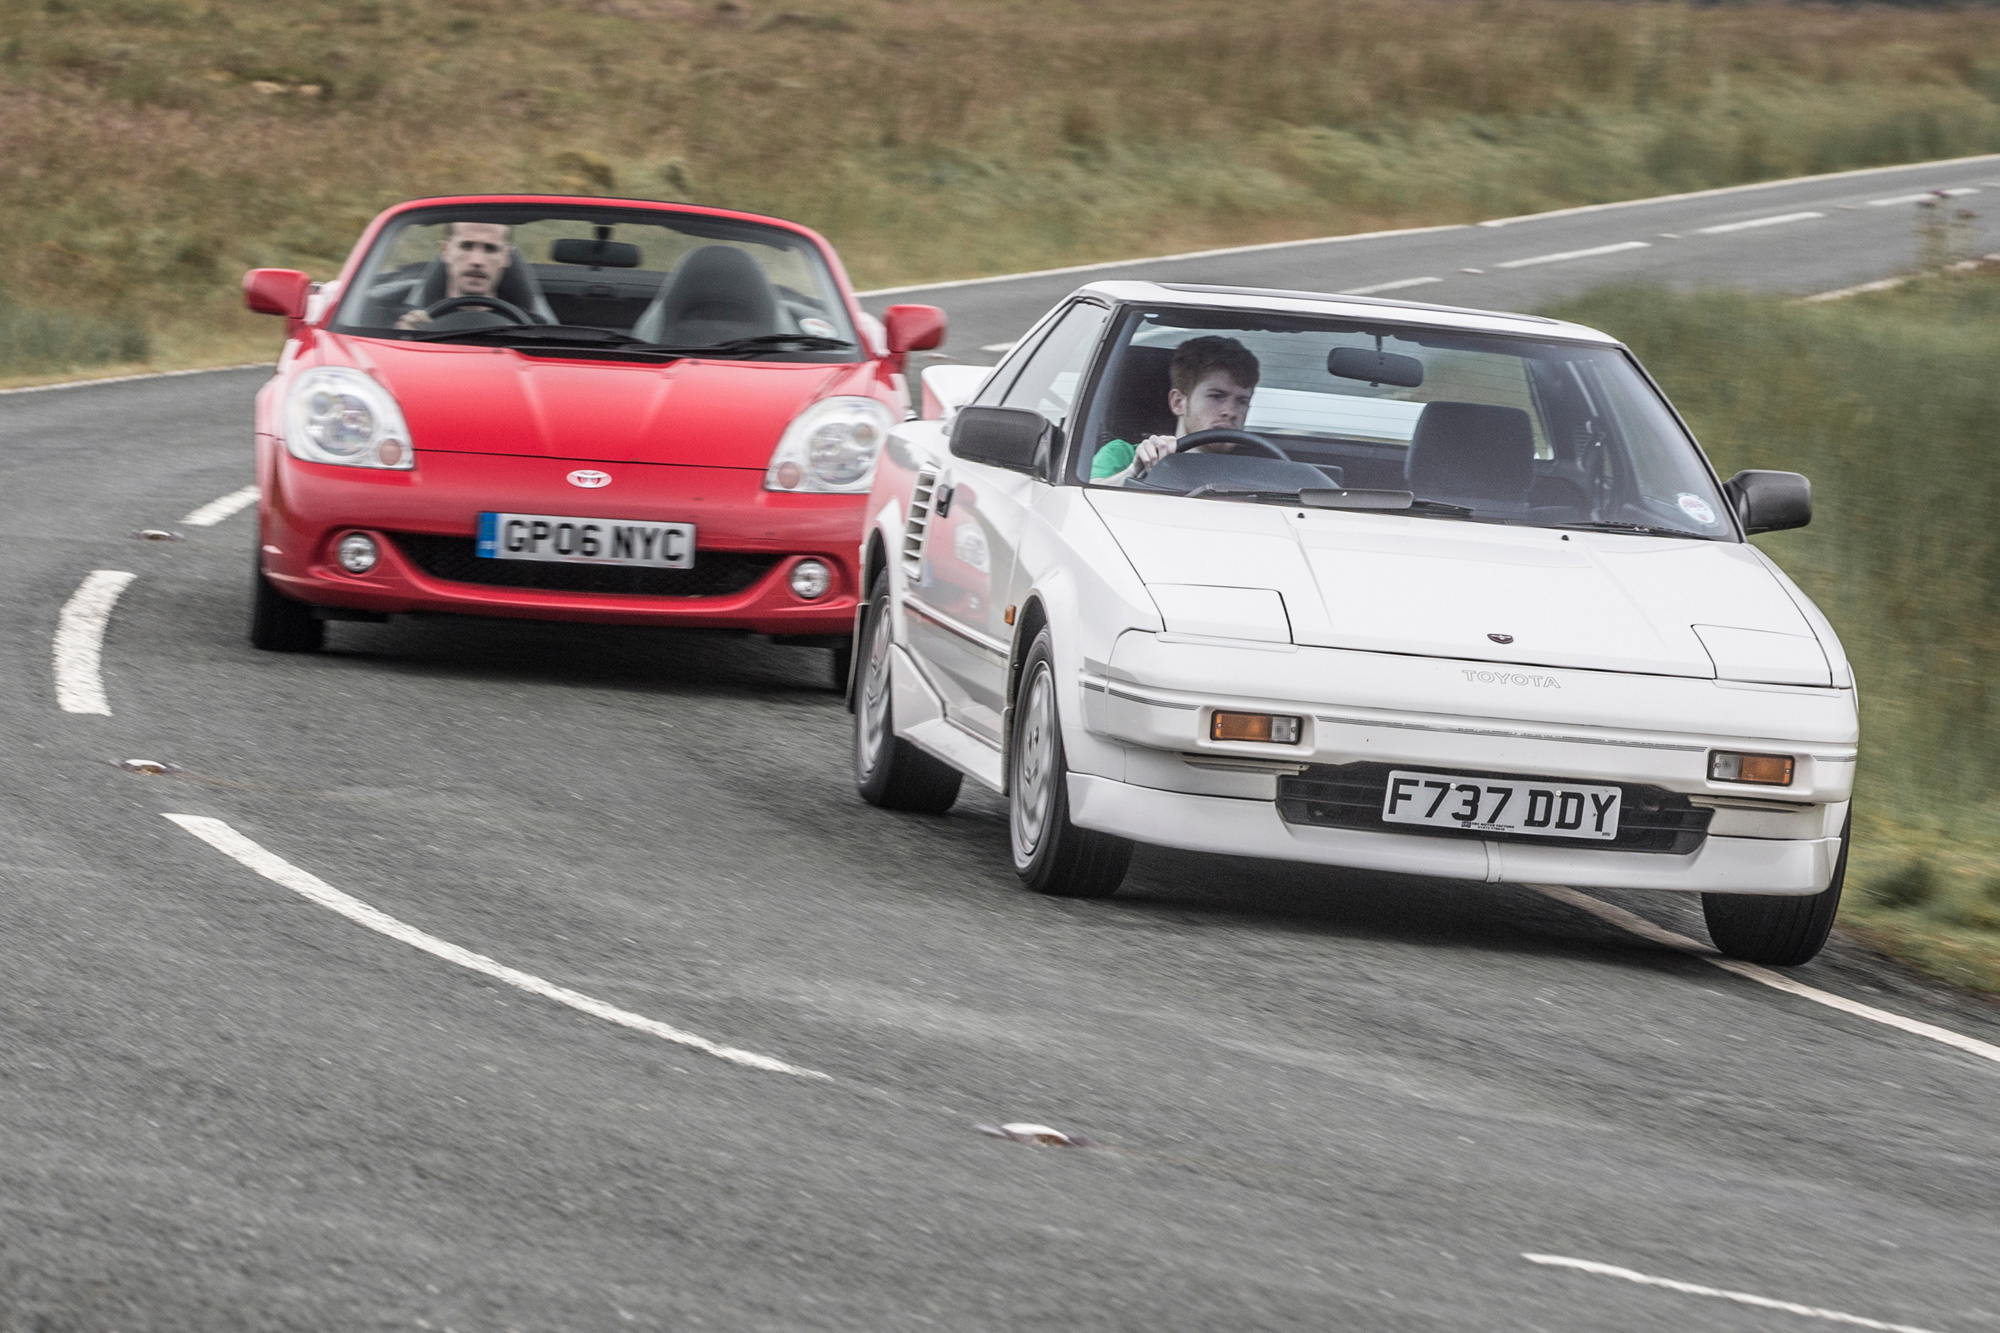 Toyota sports cars past and present head to the Welsh hills « Toyota UK news, reviews, video and pictures